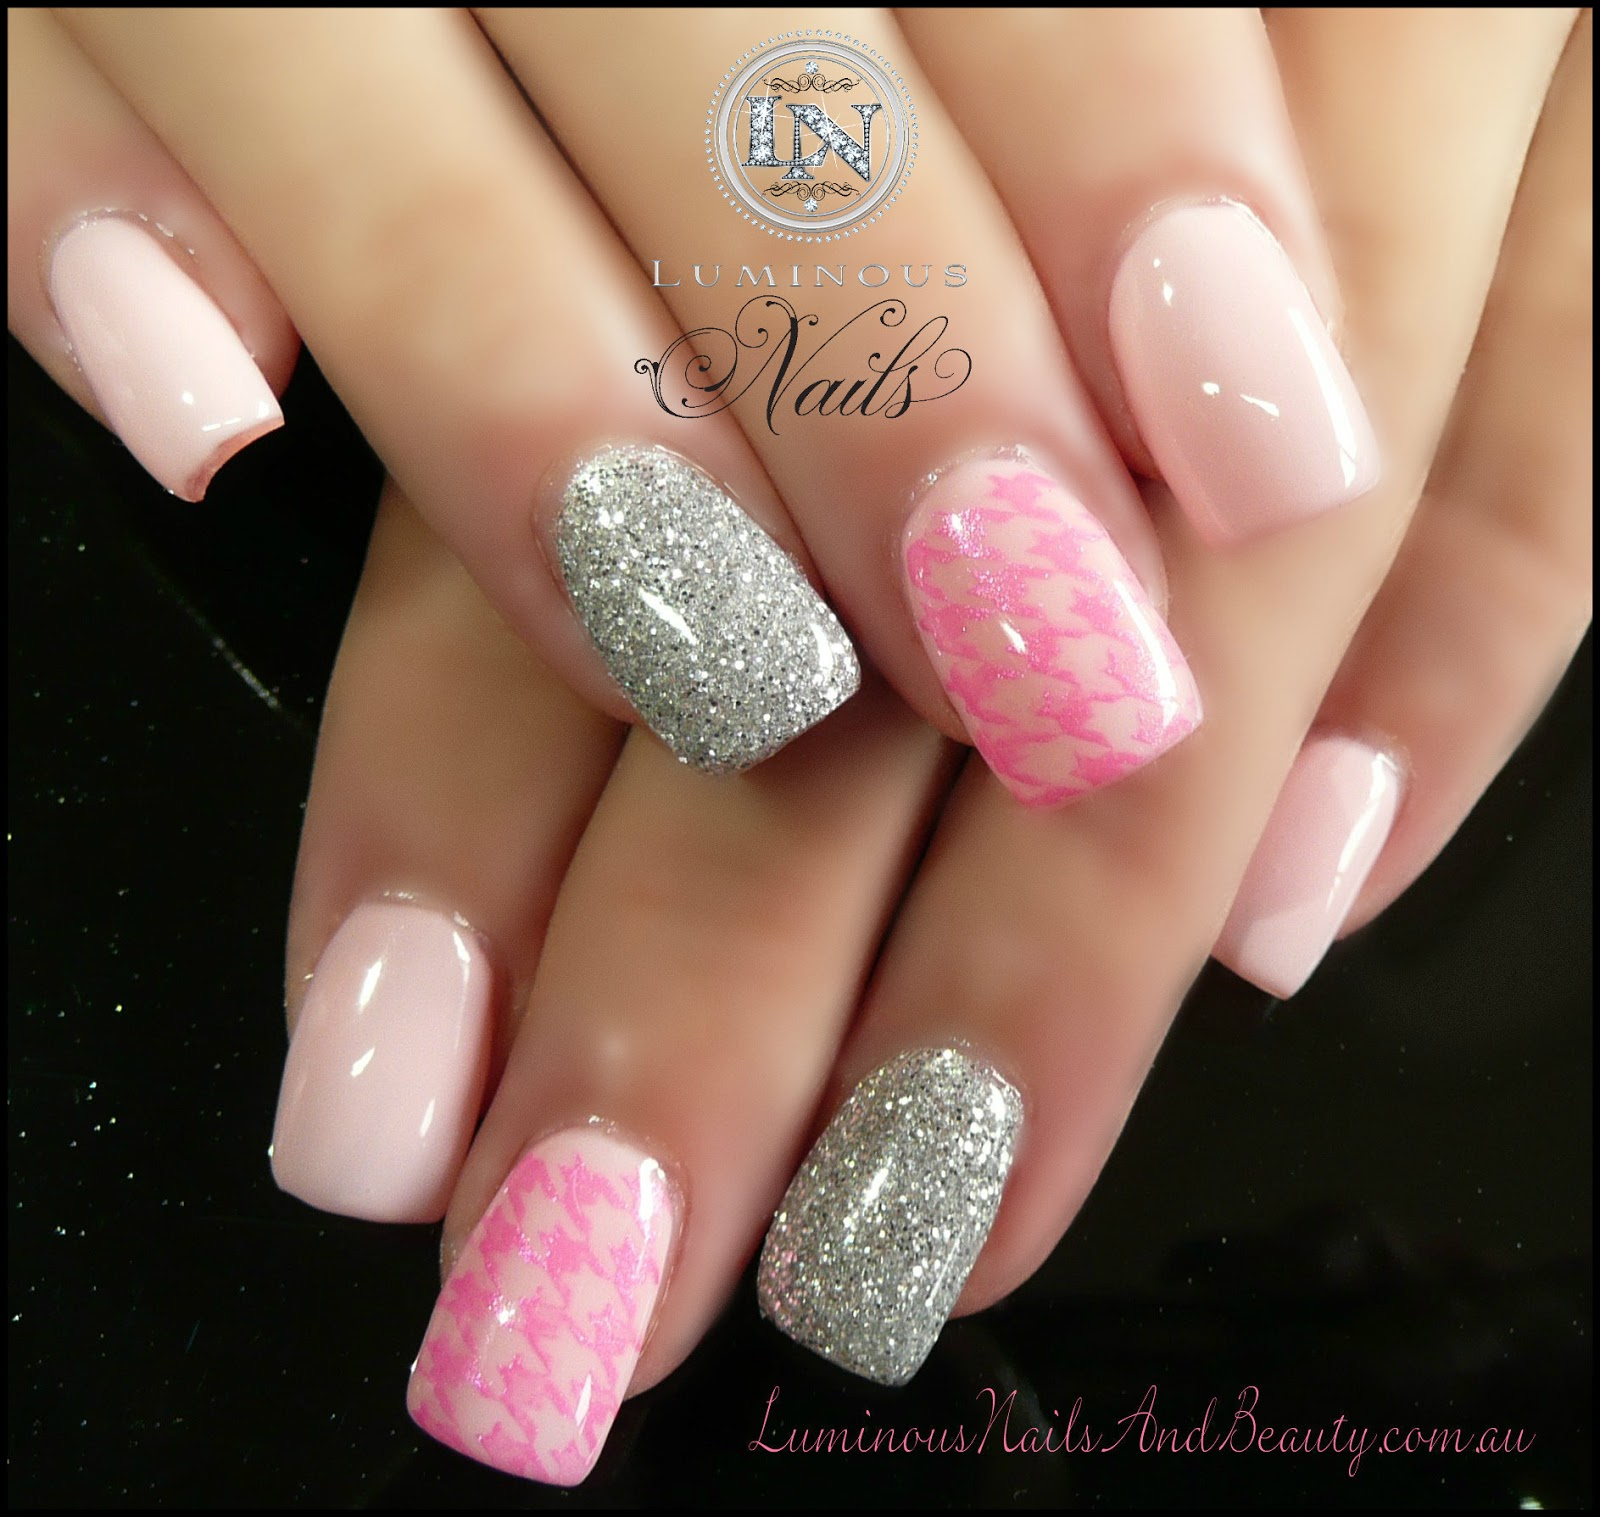 +Nails+and+Beauty,+Gold+Coast+Queensland.+Acrylic+Nails,+Gel+Nails ...